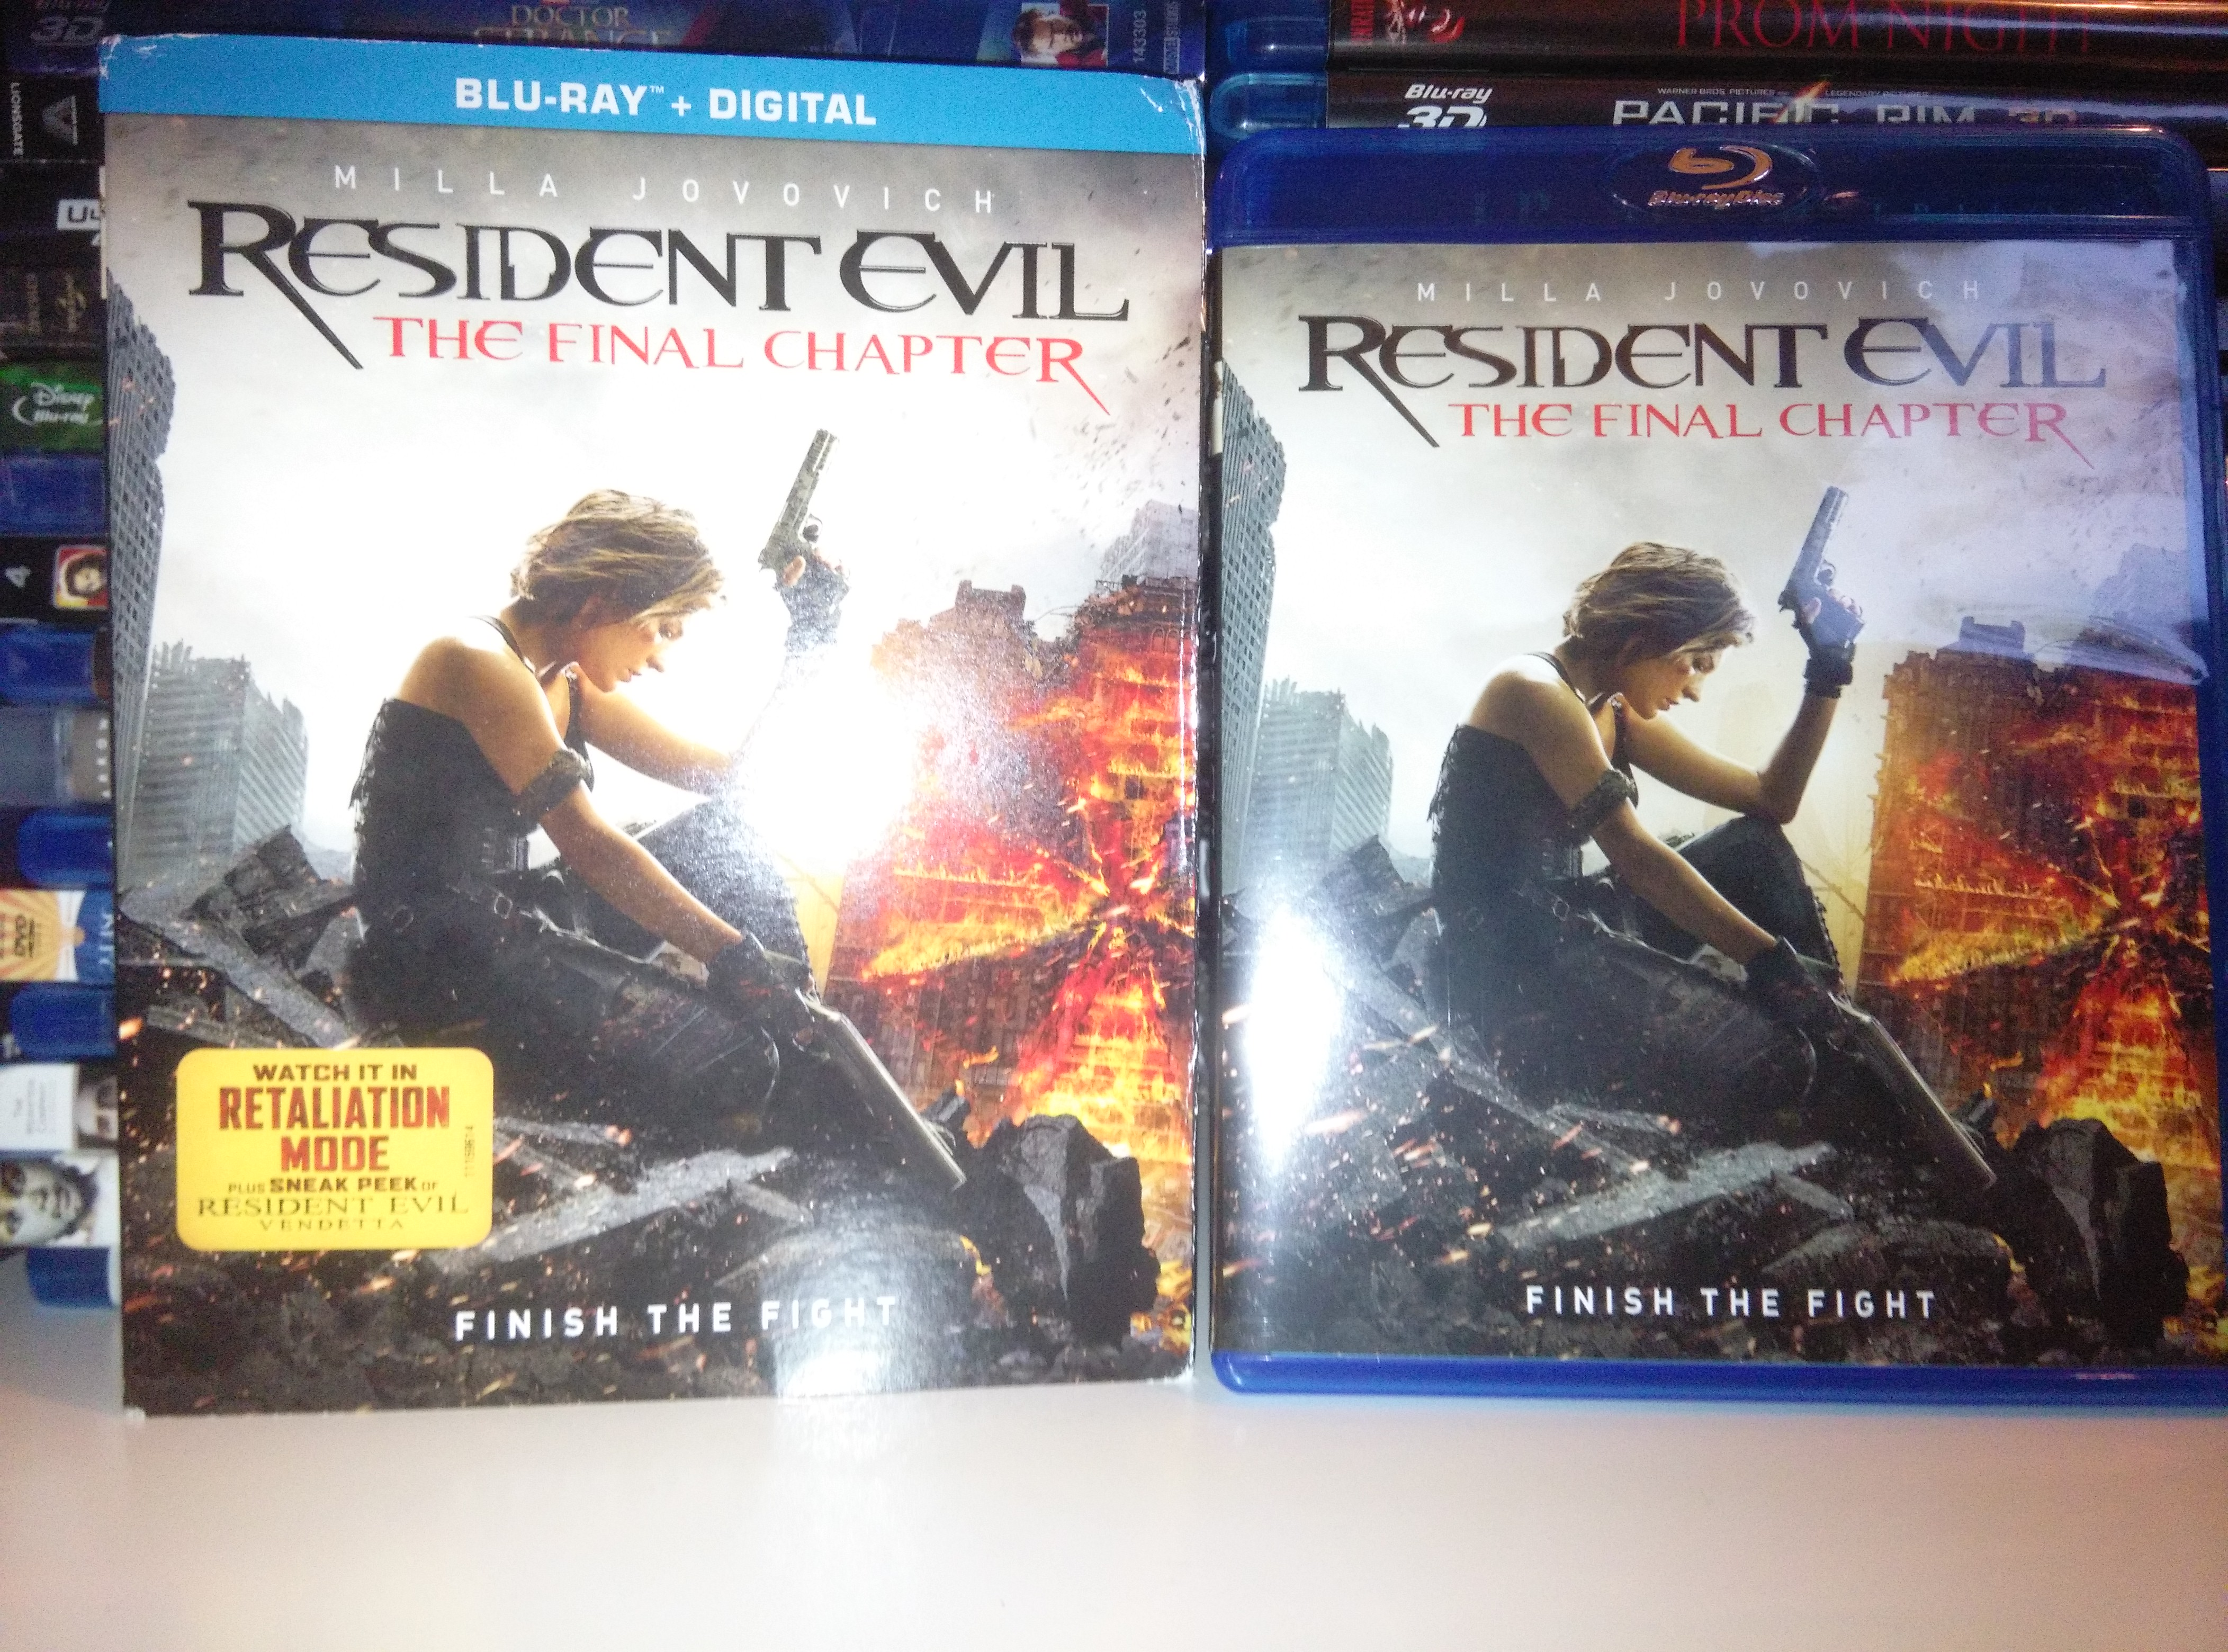 Resident Evil: The Final Chapter front